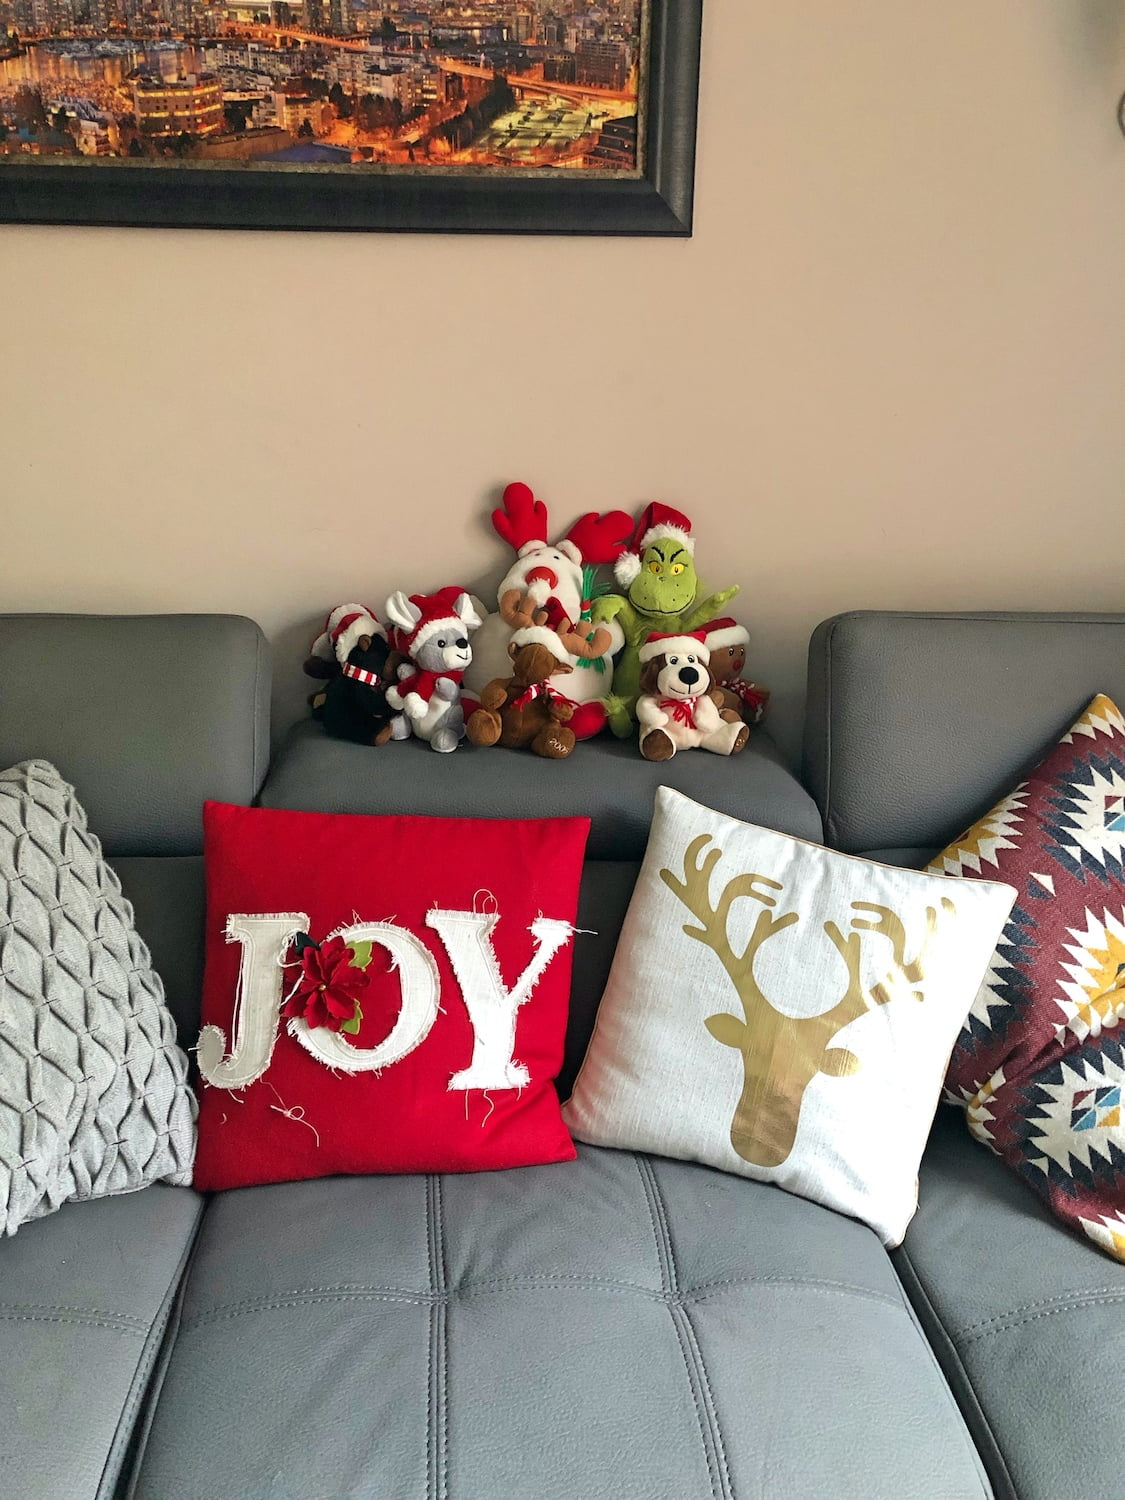 Christmas Decorations in Home